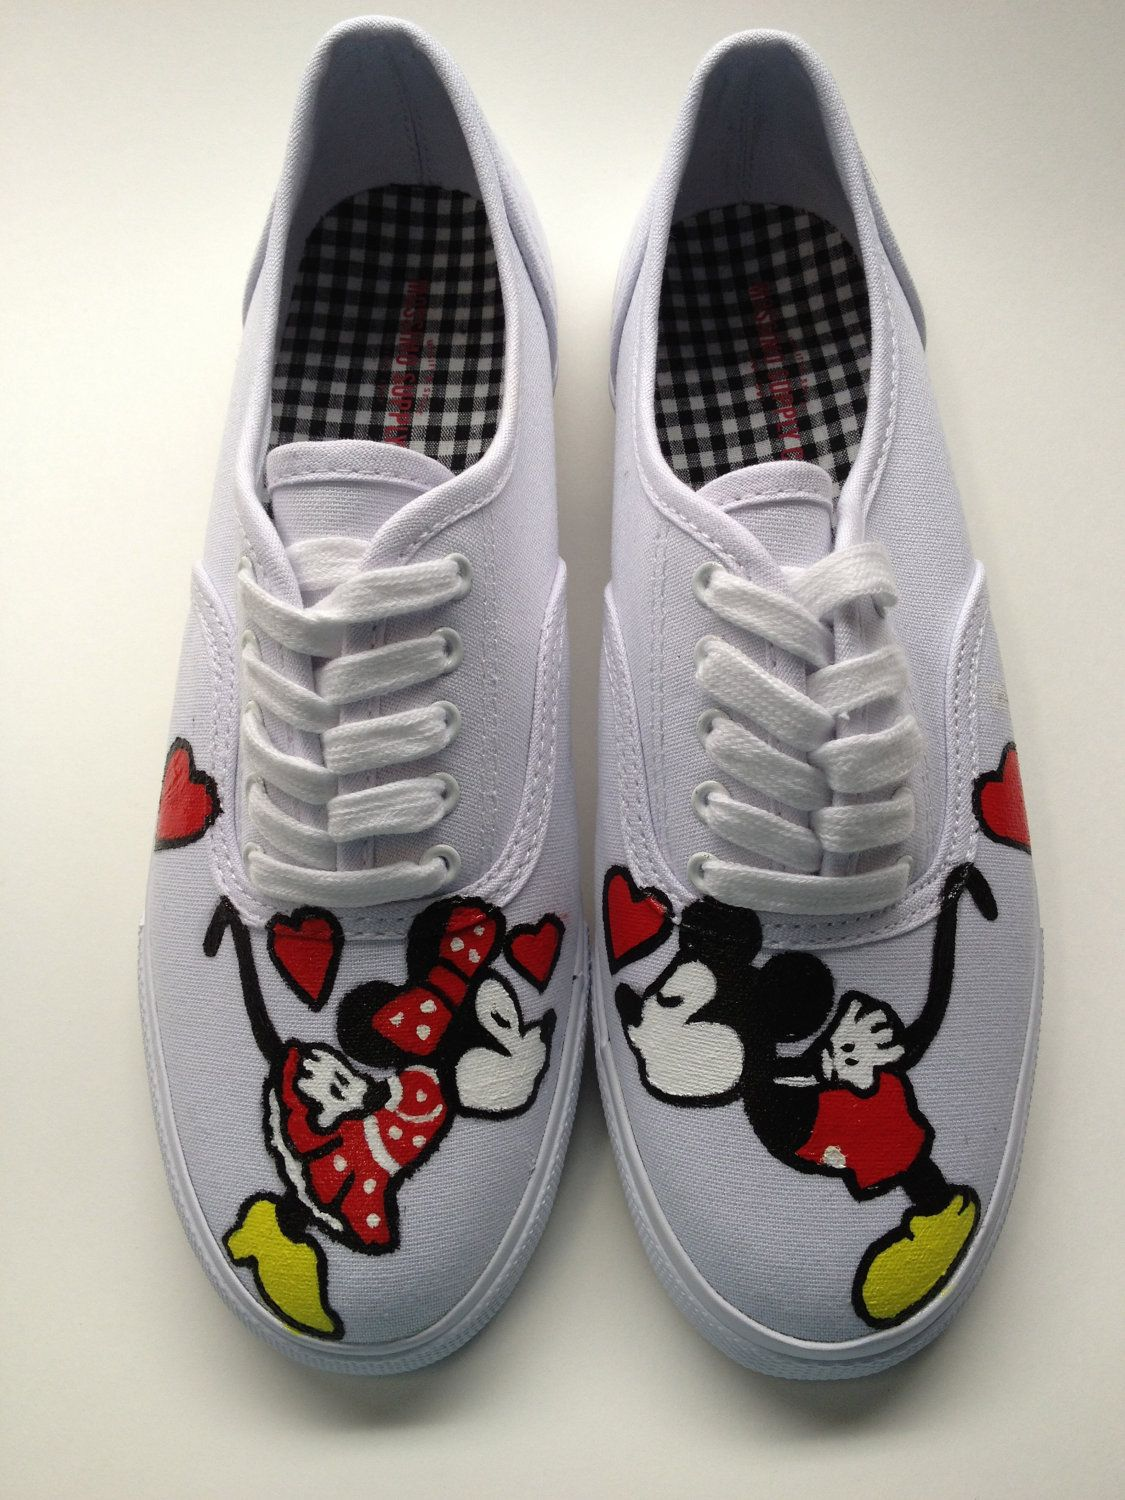 VANS+VERSION+Hand+Painted+Mickey+Mouse+Minnie+Mouse+ +by+PaintMop 913611421f